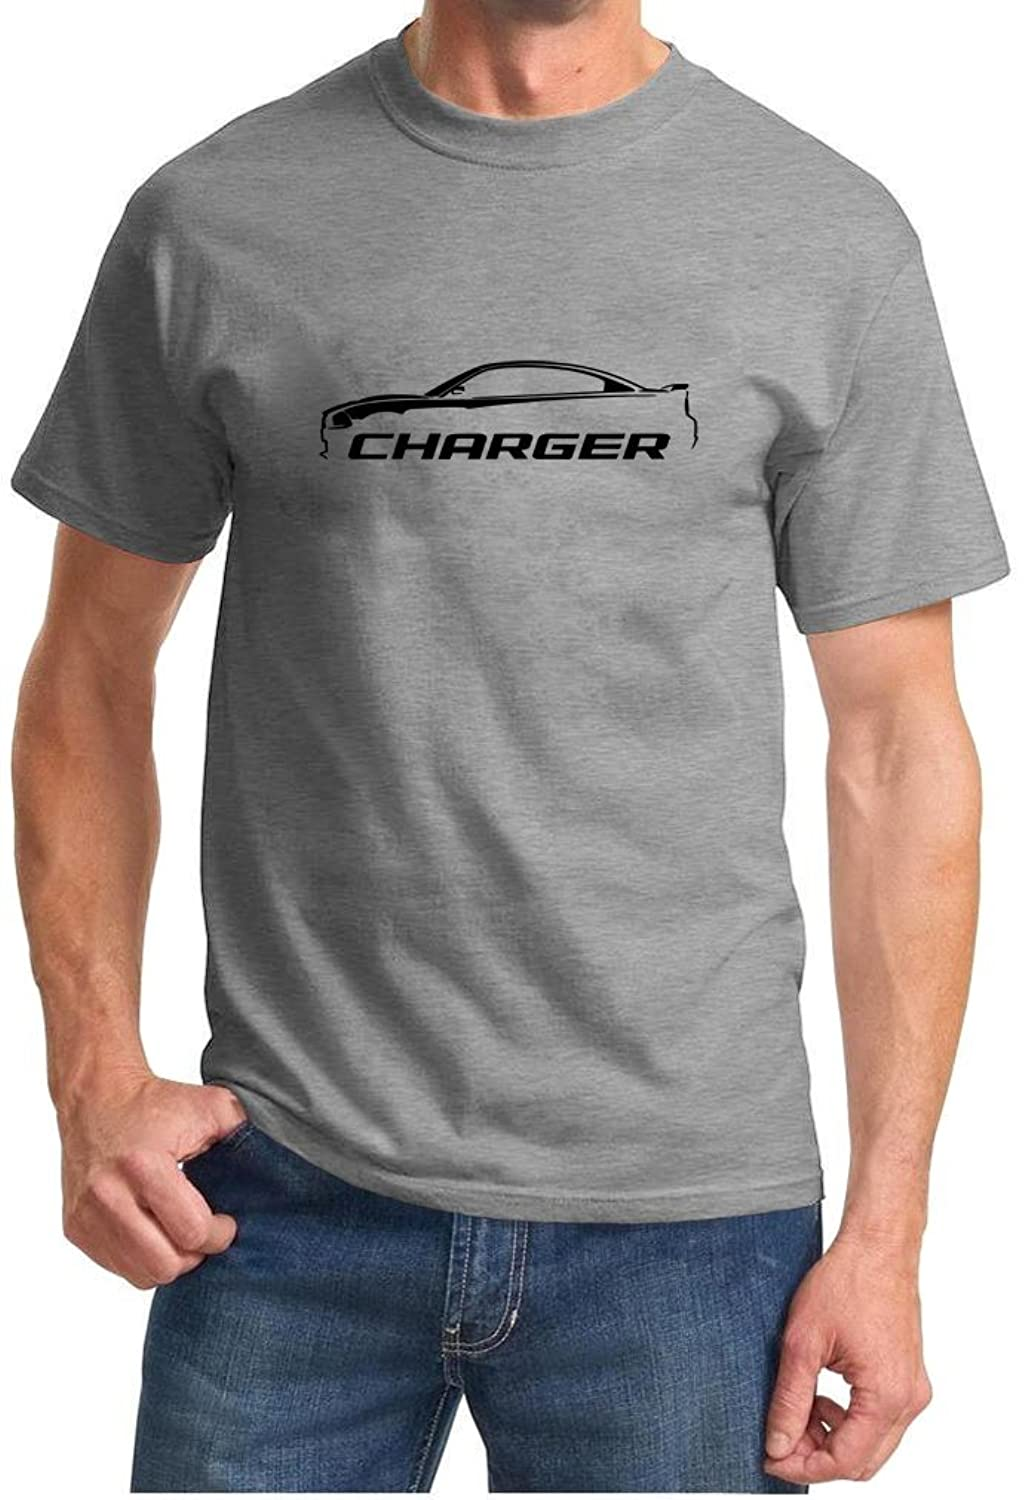 2010-14 Dodge Charger Classic Outline Design Tshirt 2XL grey